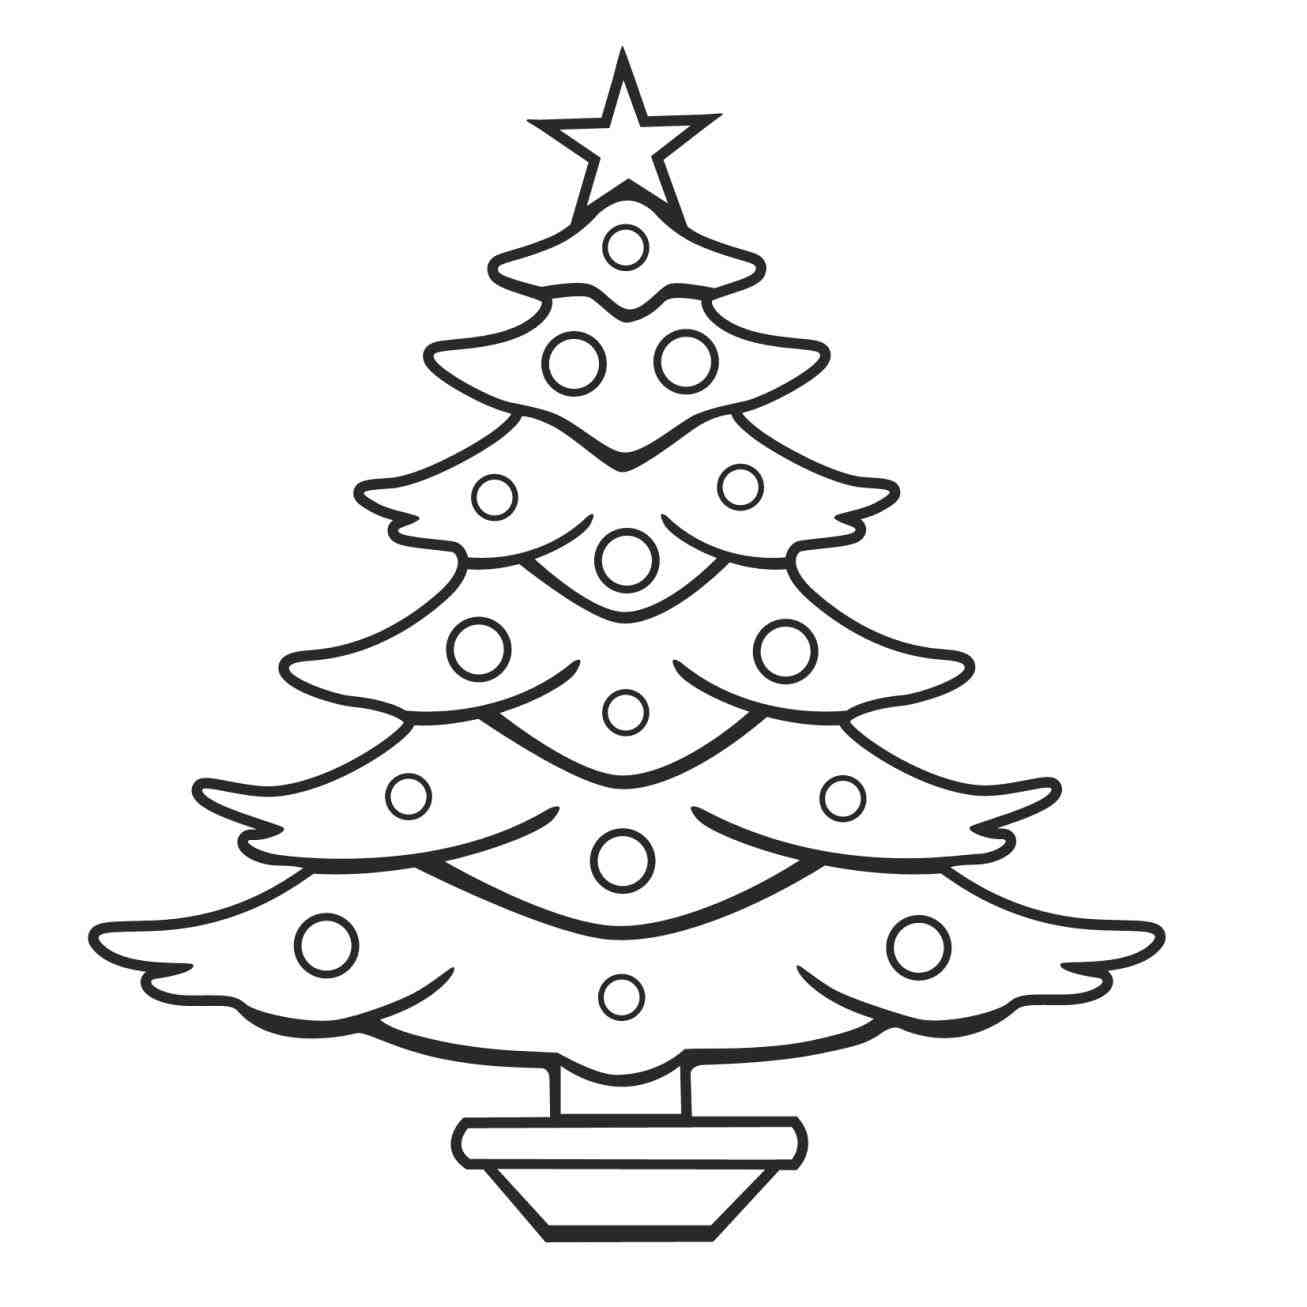 1307x1307 Christmas Trees Clip Art Black And White cheminee.website